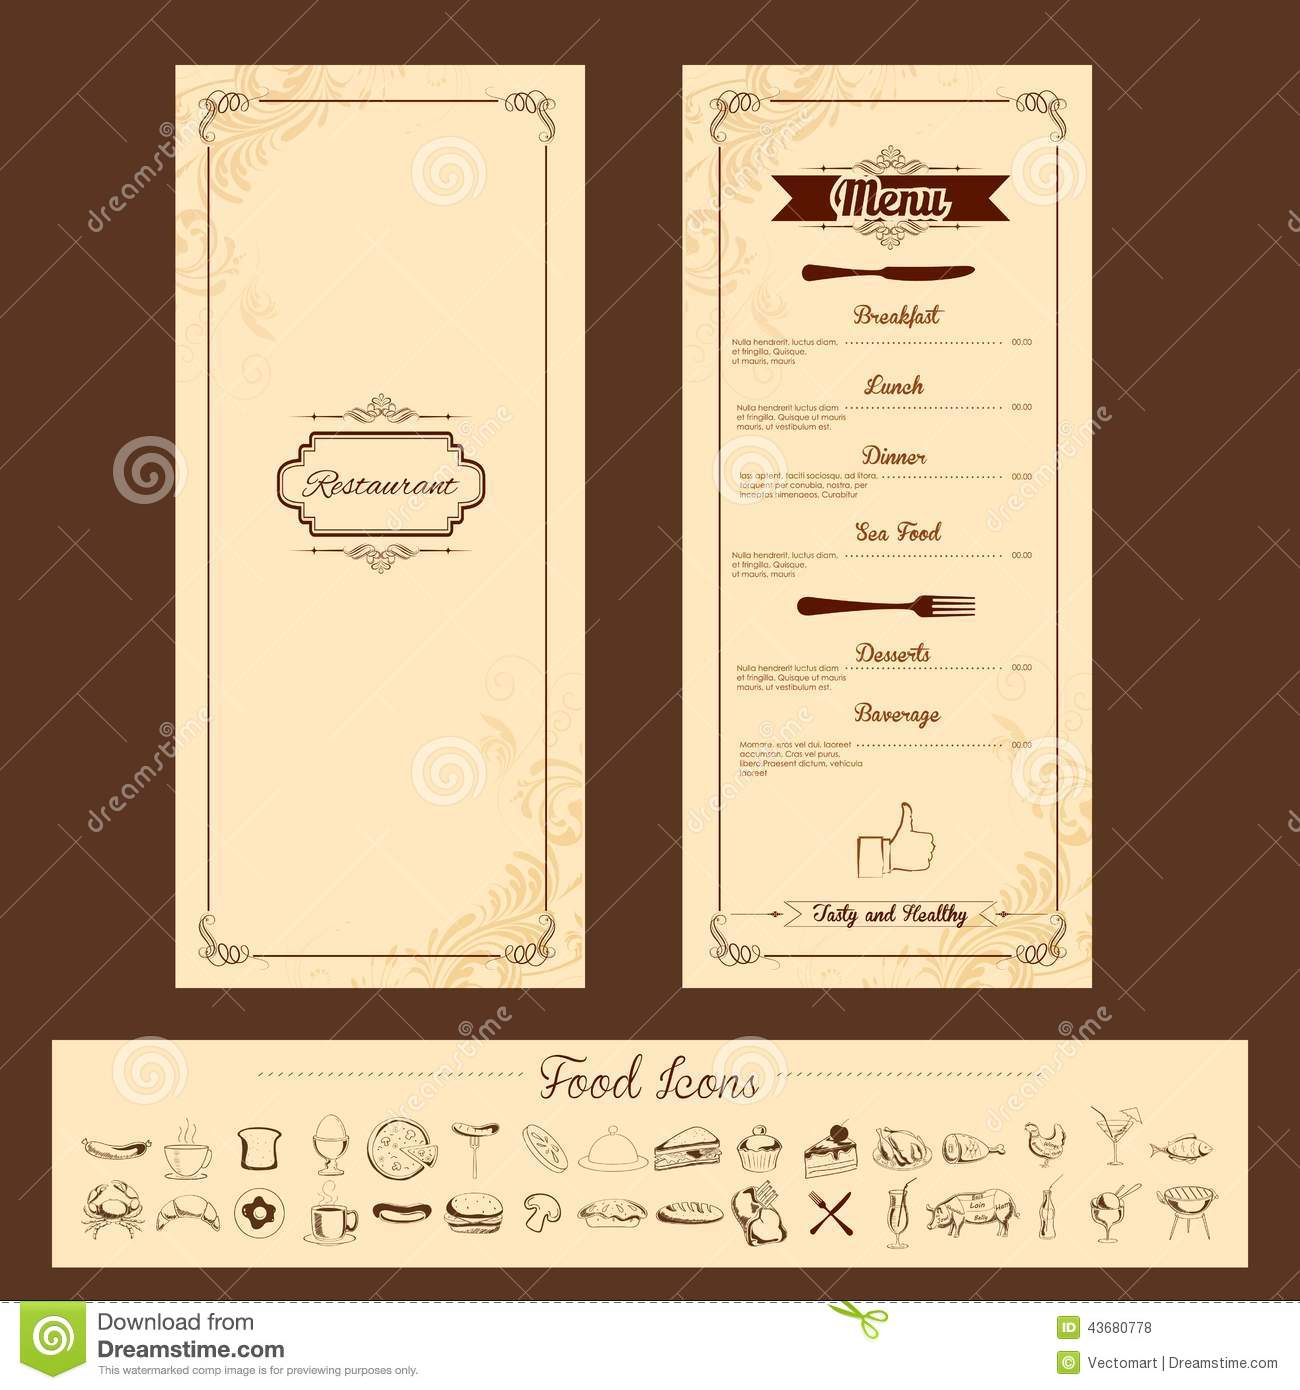 Restaurant Placemat Menu Vector Design Layout Stock Vector - Image ...